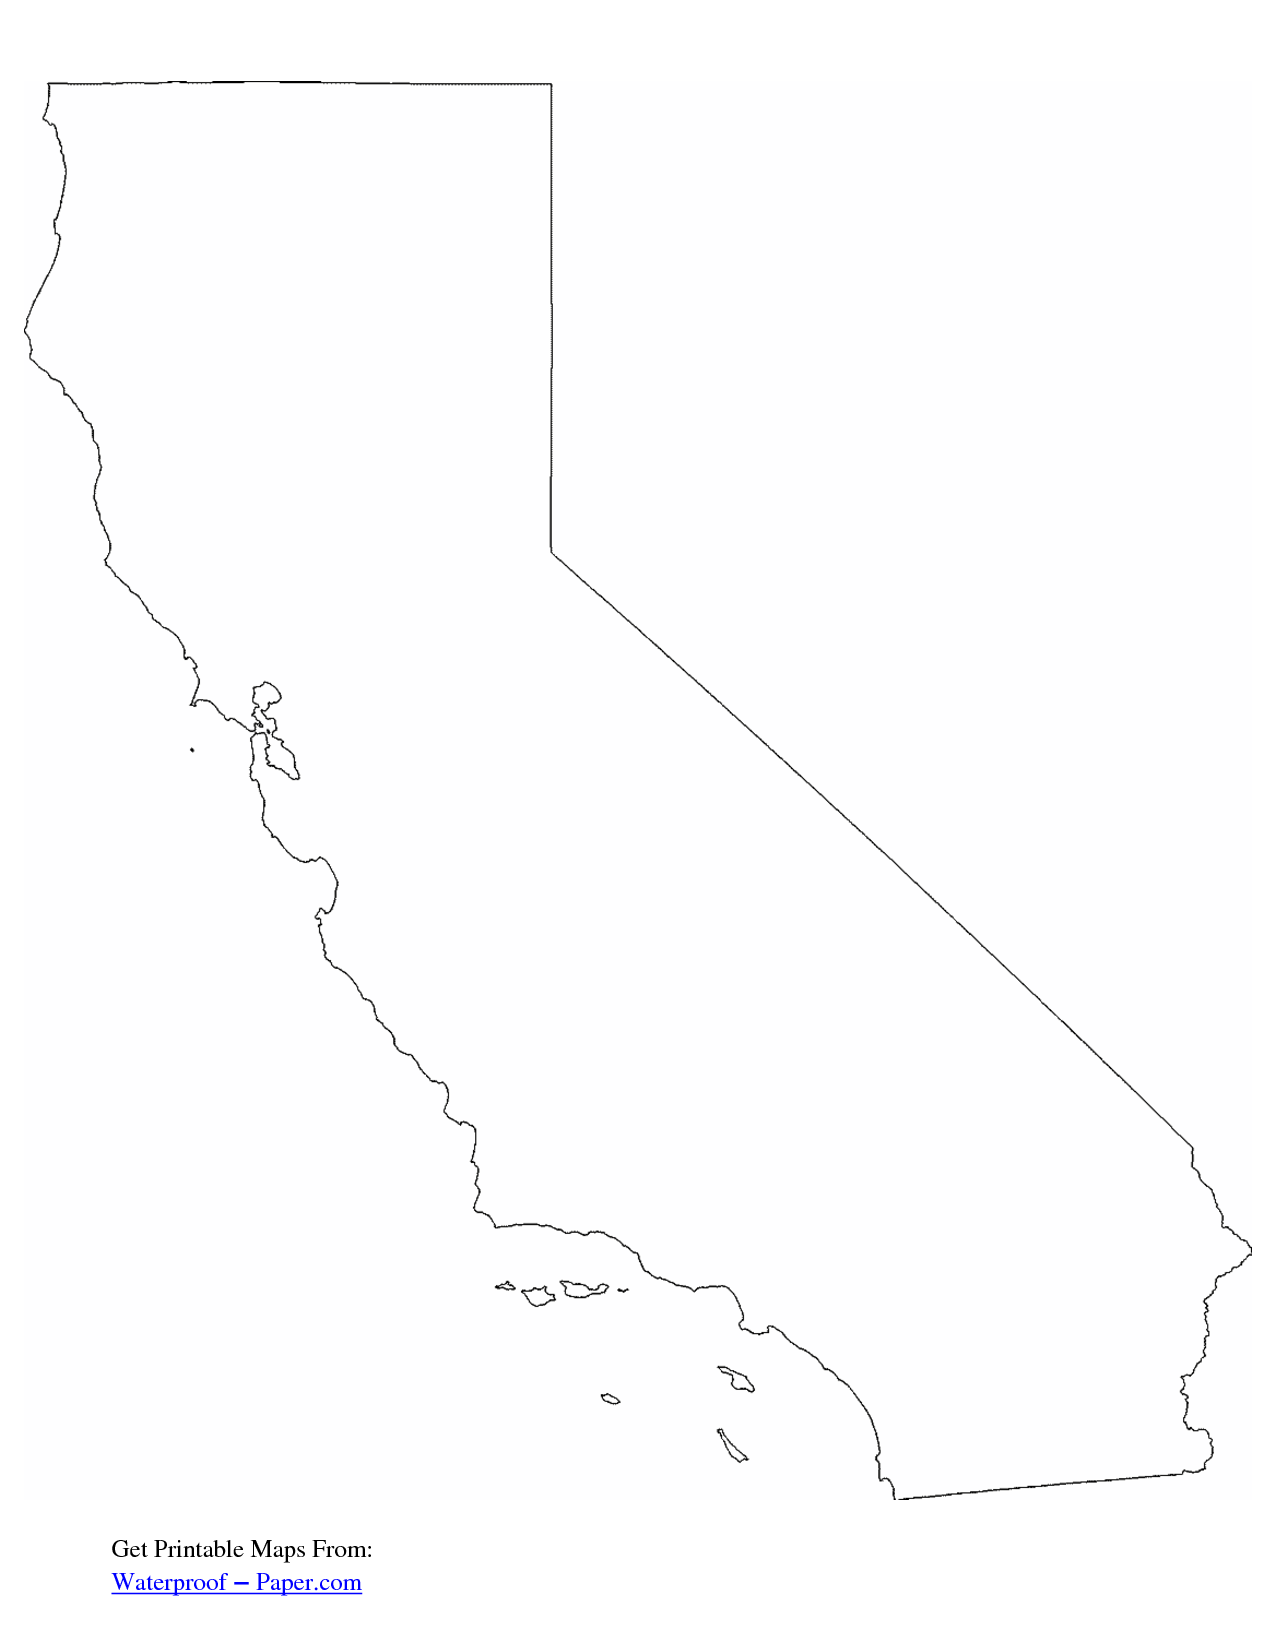 Free California Outline, Download Free Clip Art, Free Clip Art on.